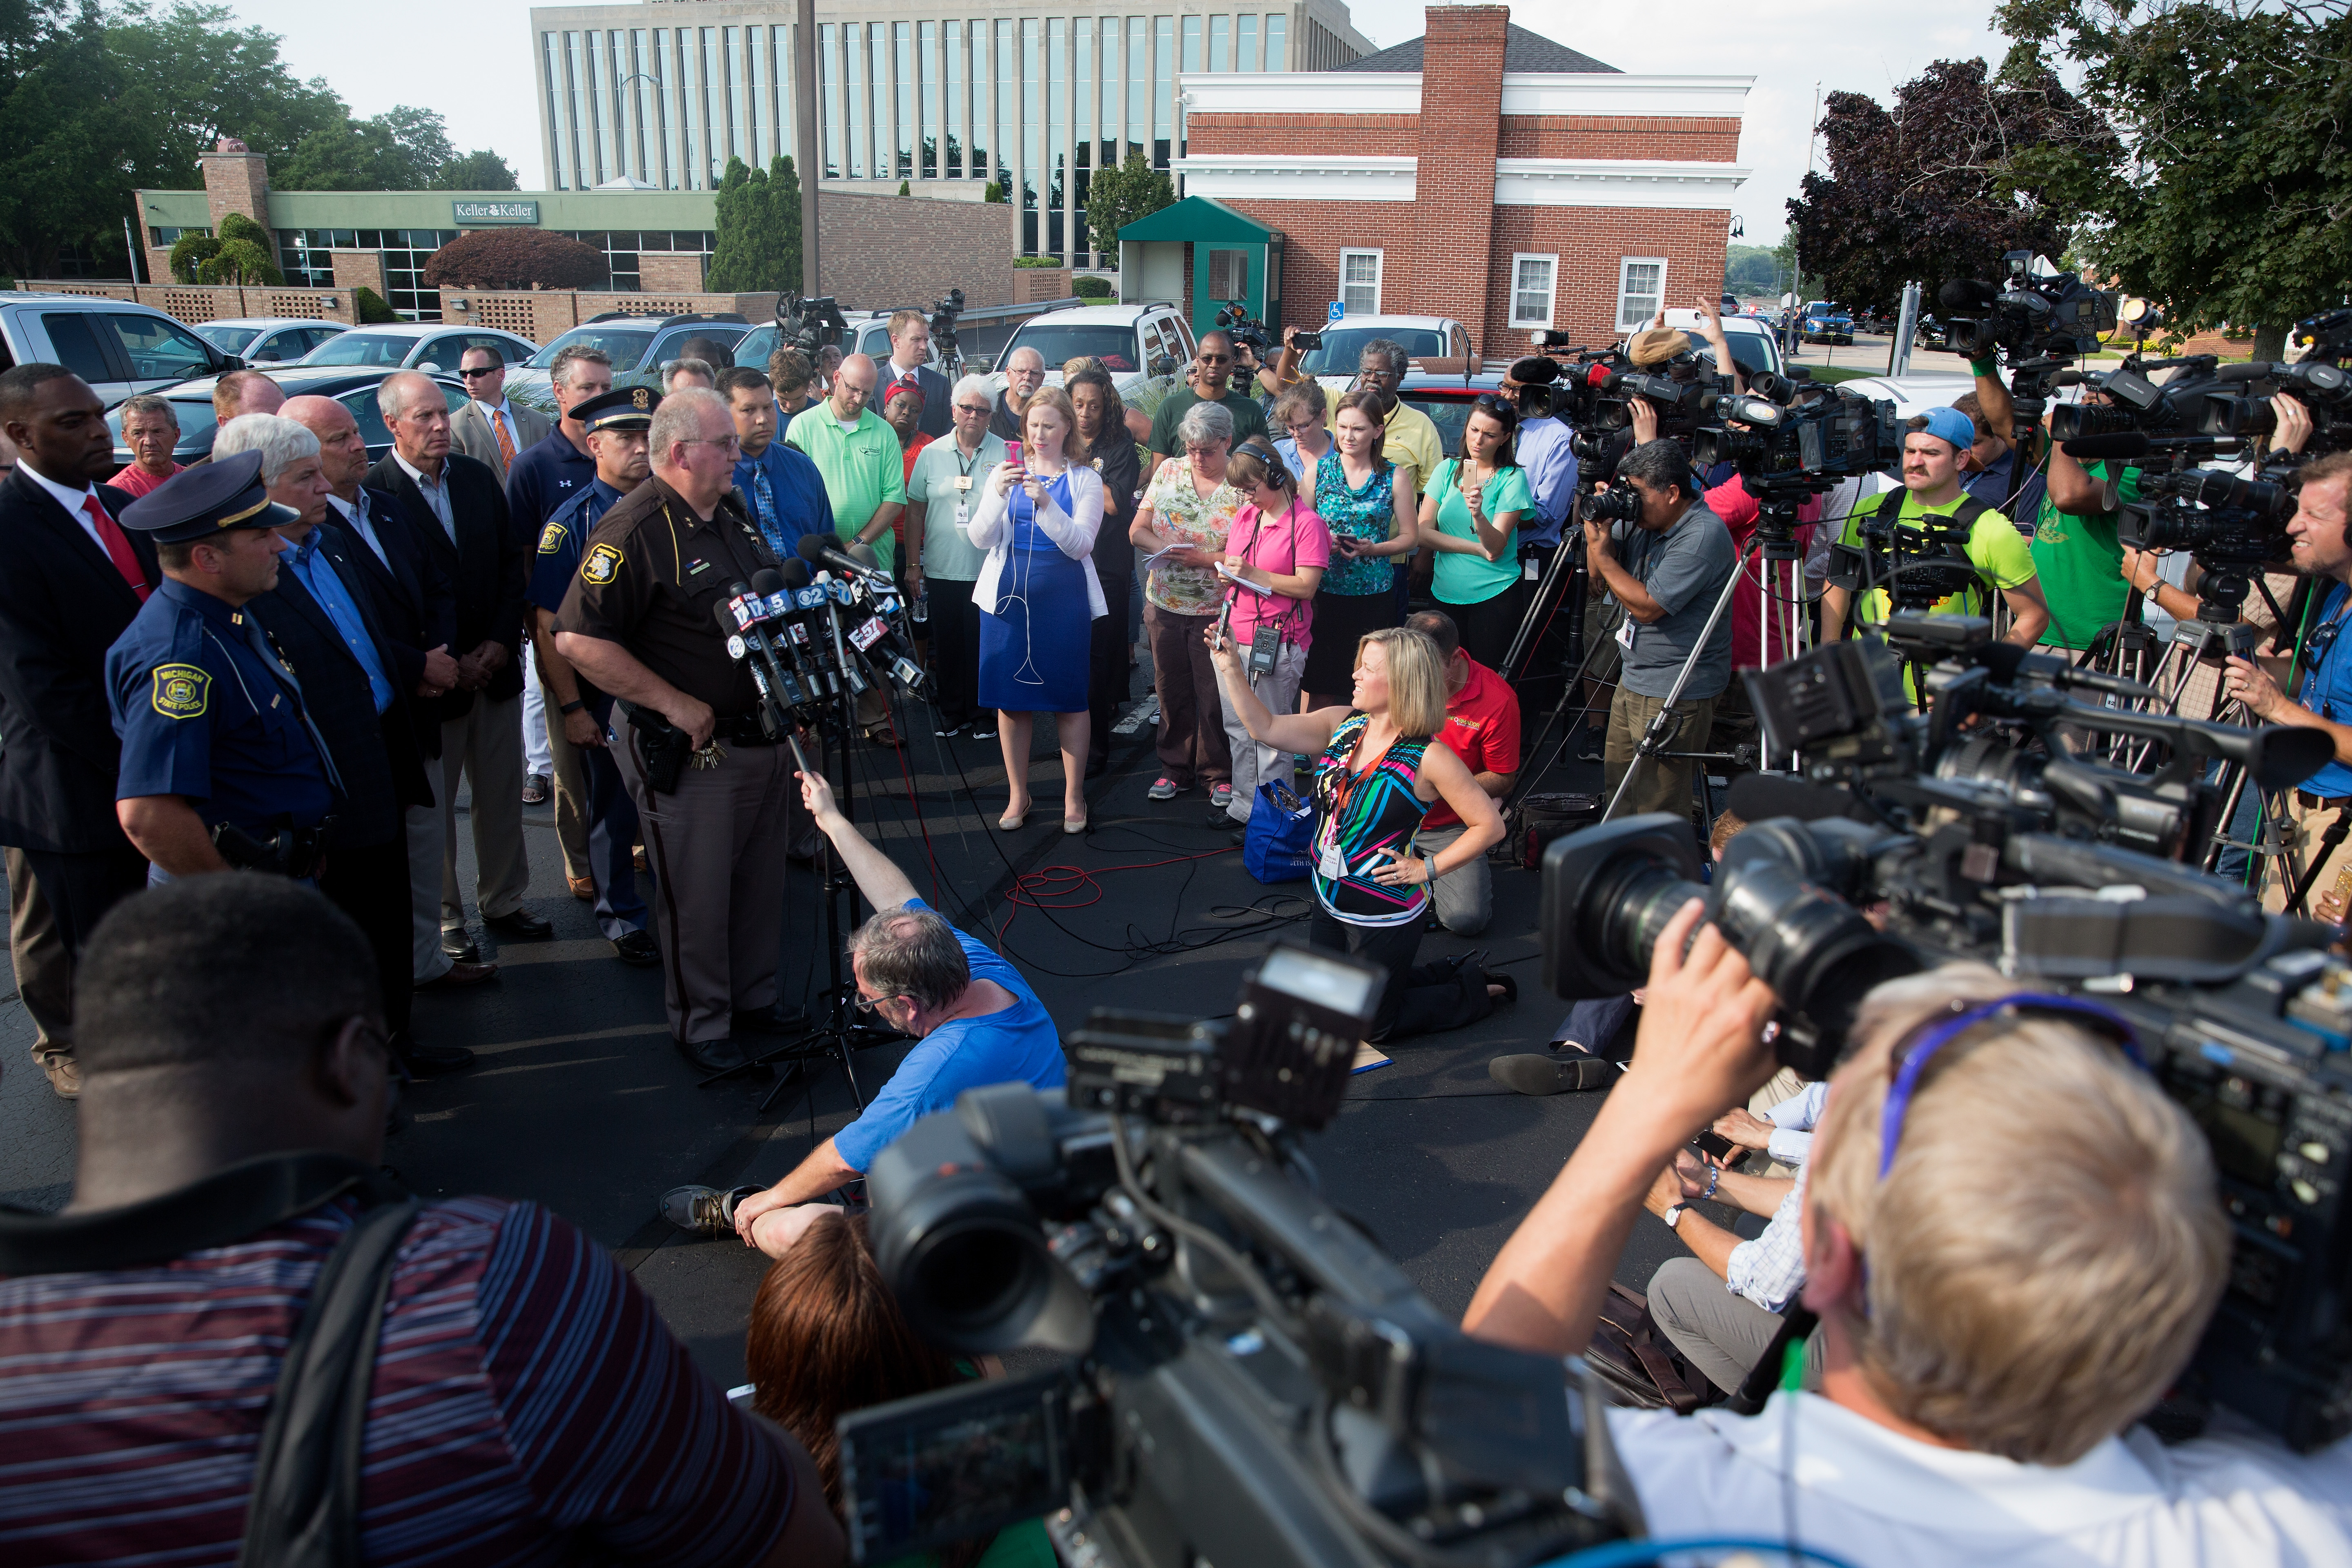 Sheriff Paul Bailey of Berrien County speaks at a press conference at Berrien County Courthouse where several people where shot in Saint Joseph, Michigan, July 11, 2016.